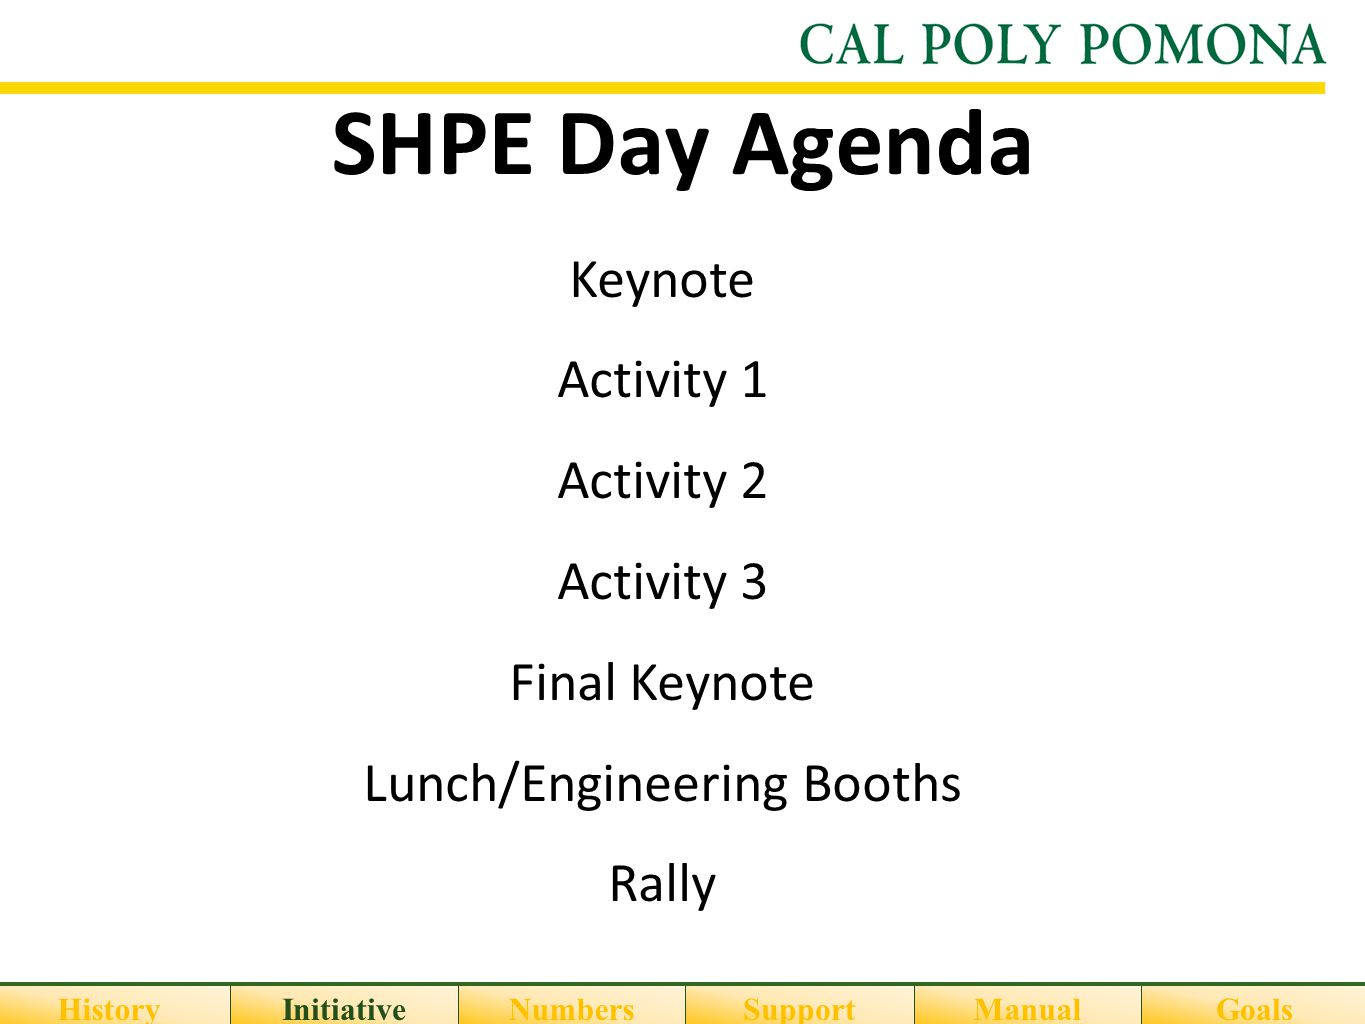 SHPE Day Agenda HistoryInitiativeNumbersSupportGoalsManual Keynote Activity 1 Activity 2 Activity 3 Final Keynote Lunch/Engineering Booths Rally